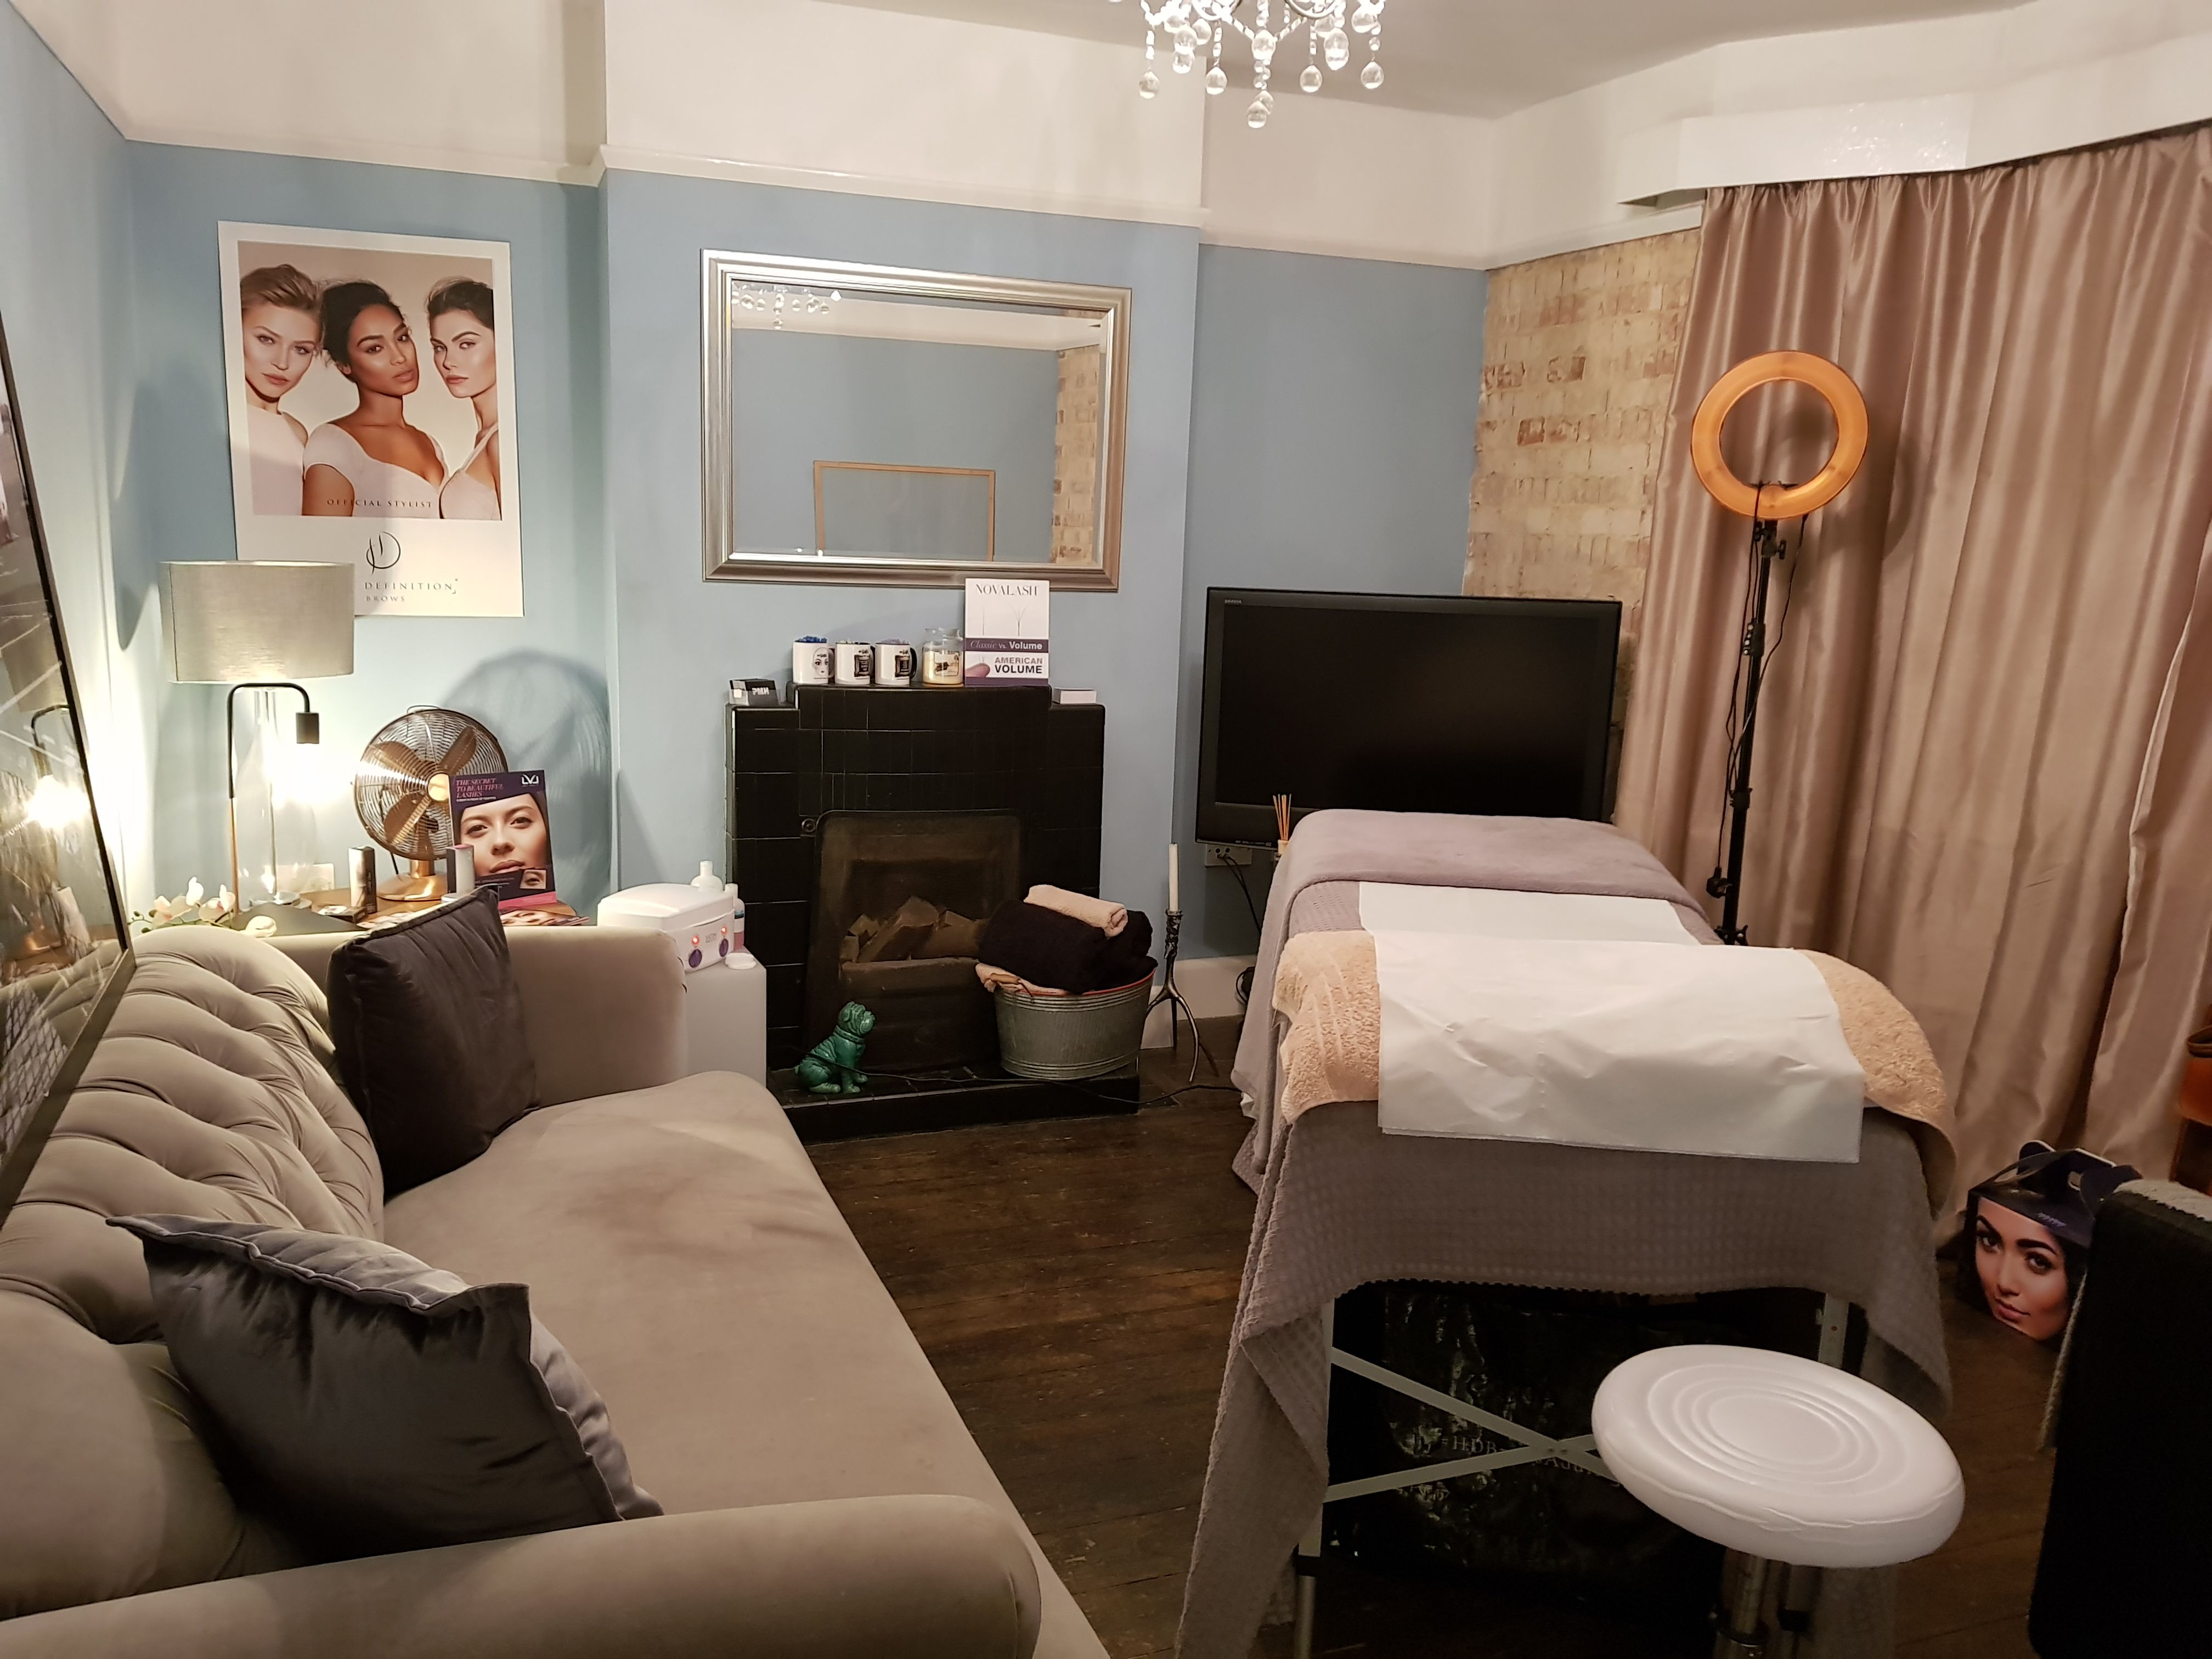 Pmjhoward Lash ExtensionTreatment Room Room and Decor